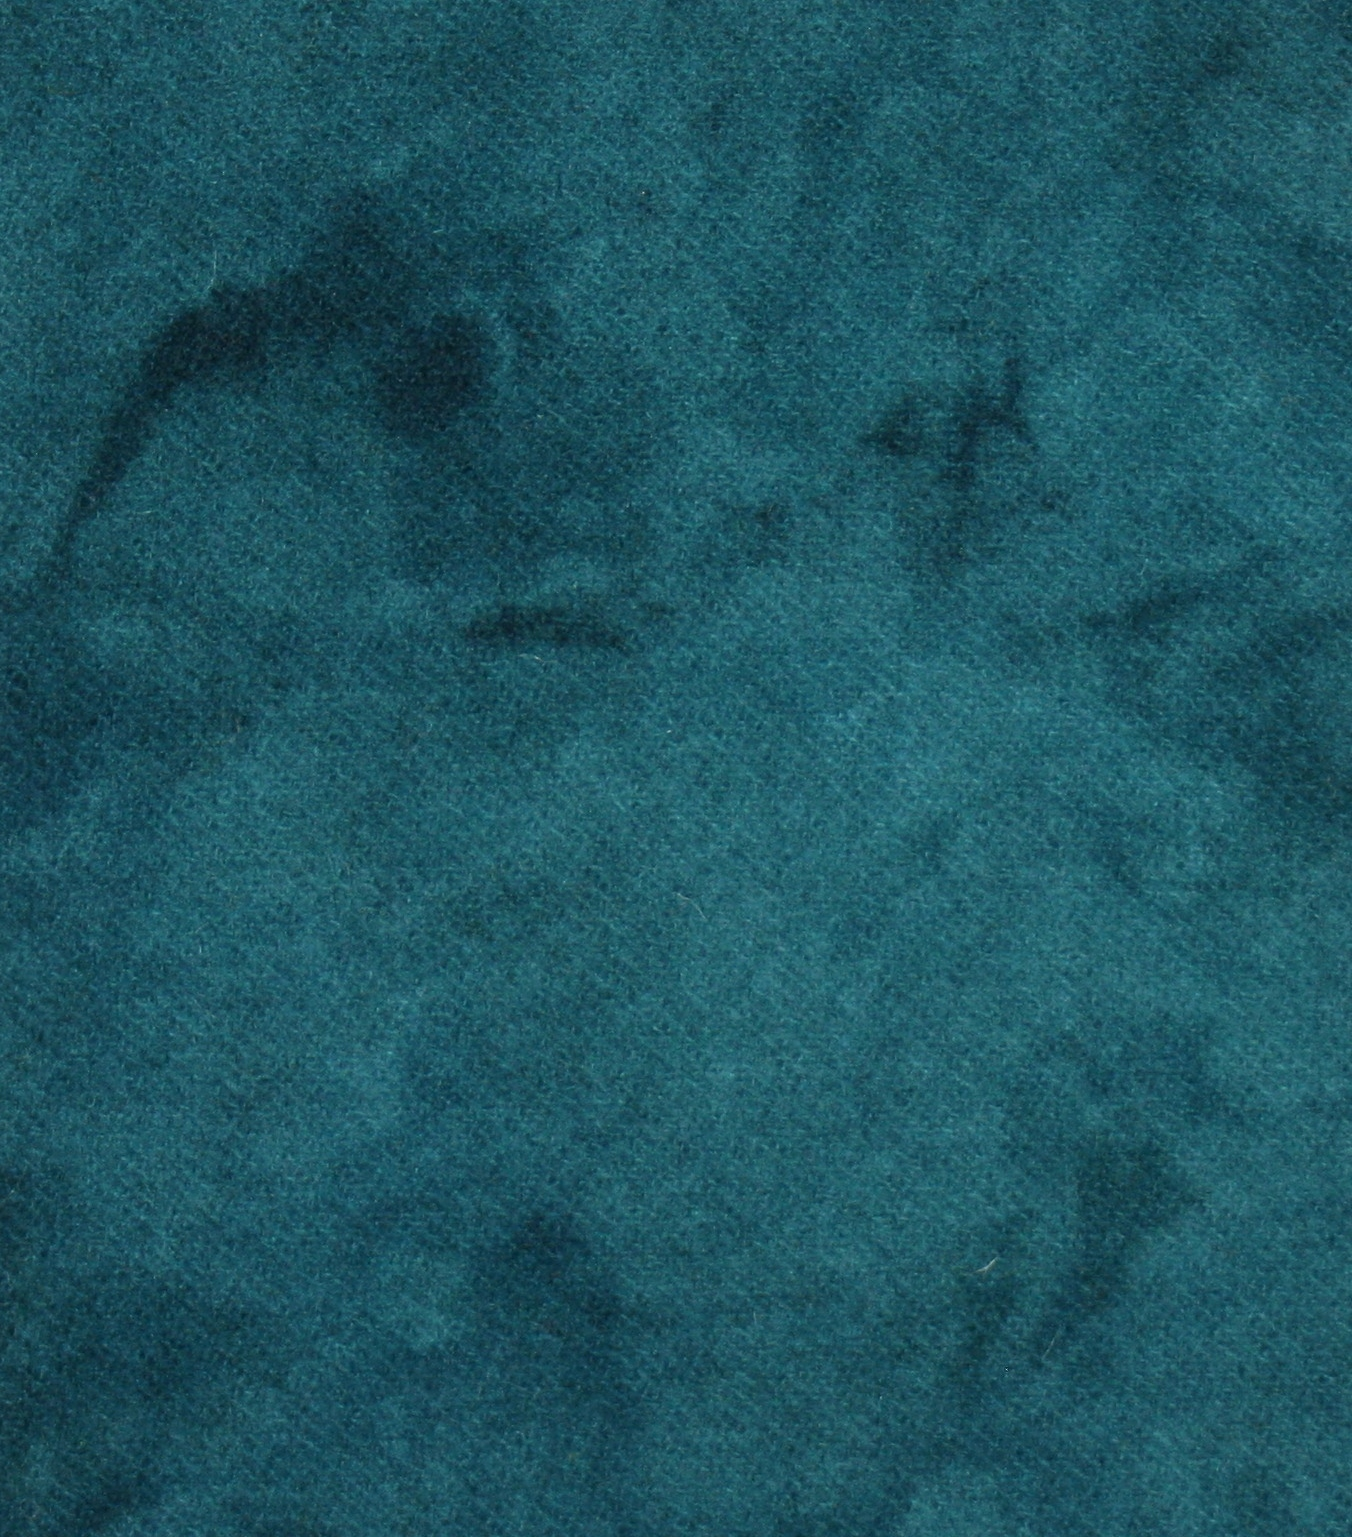 Teal Artisan Hand Dyed 100% Wool.  Part of the Totally Teal Collection